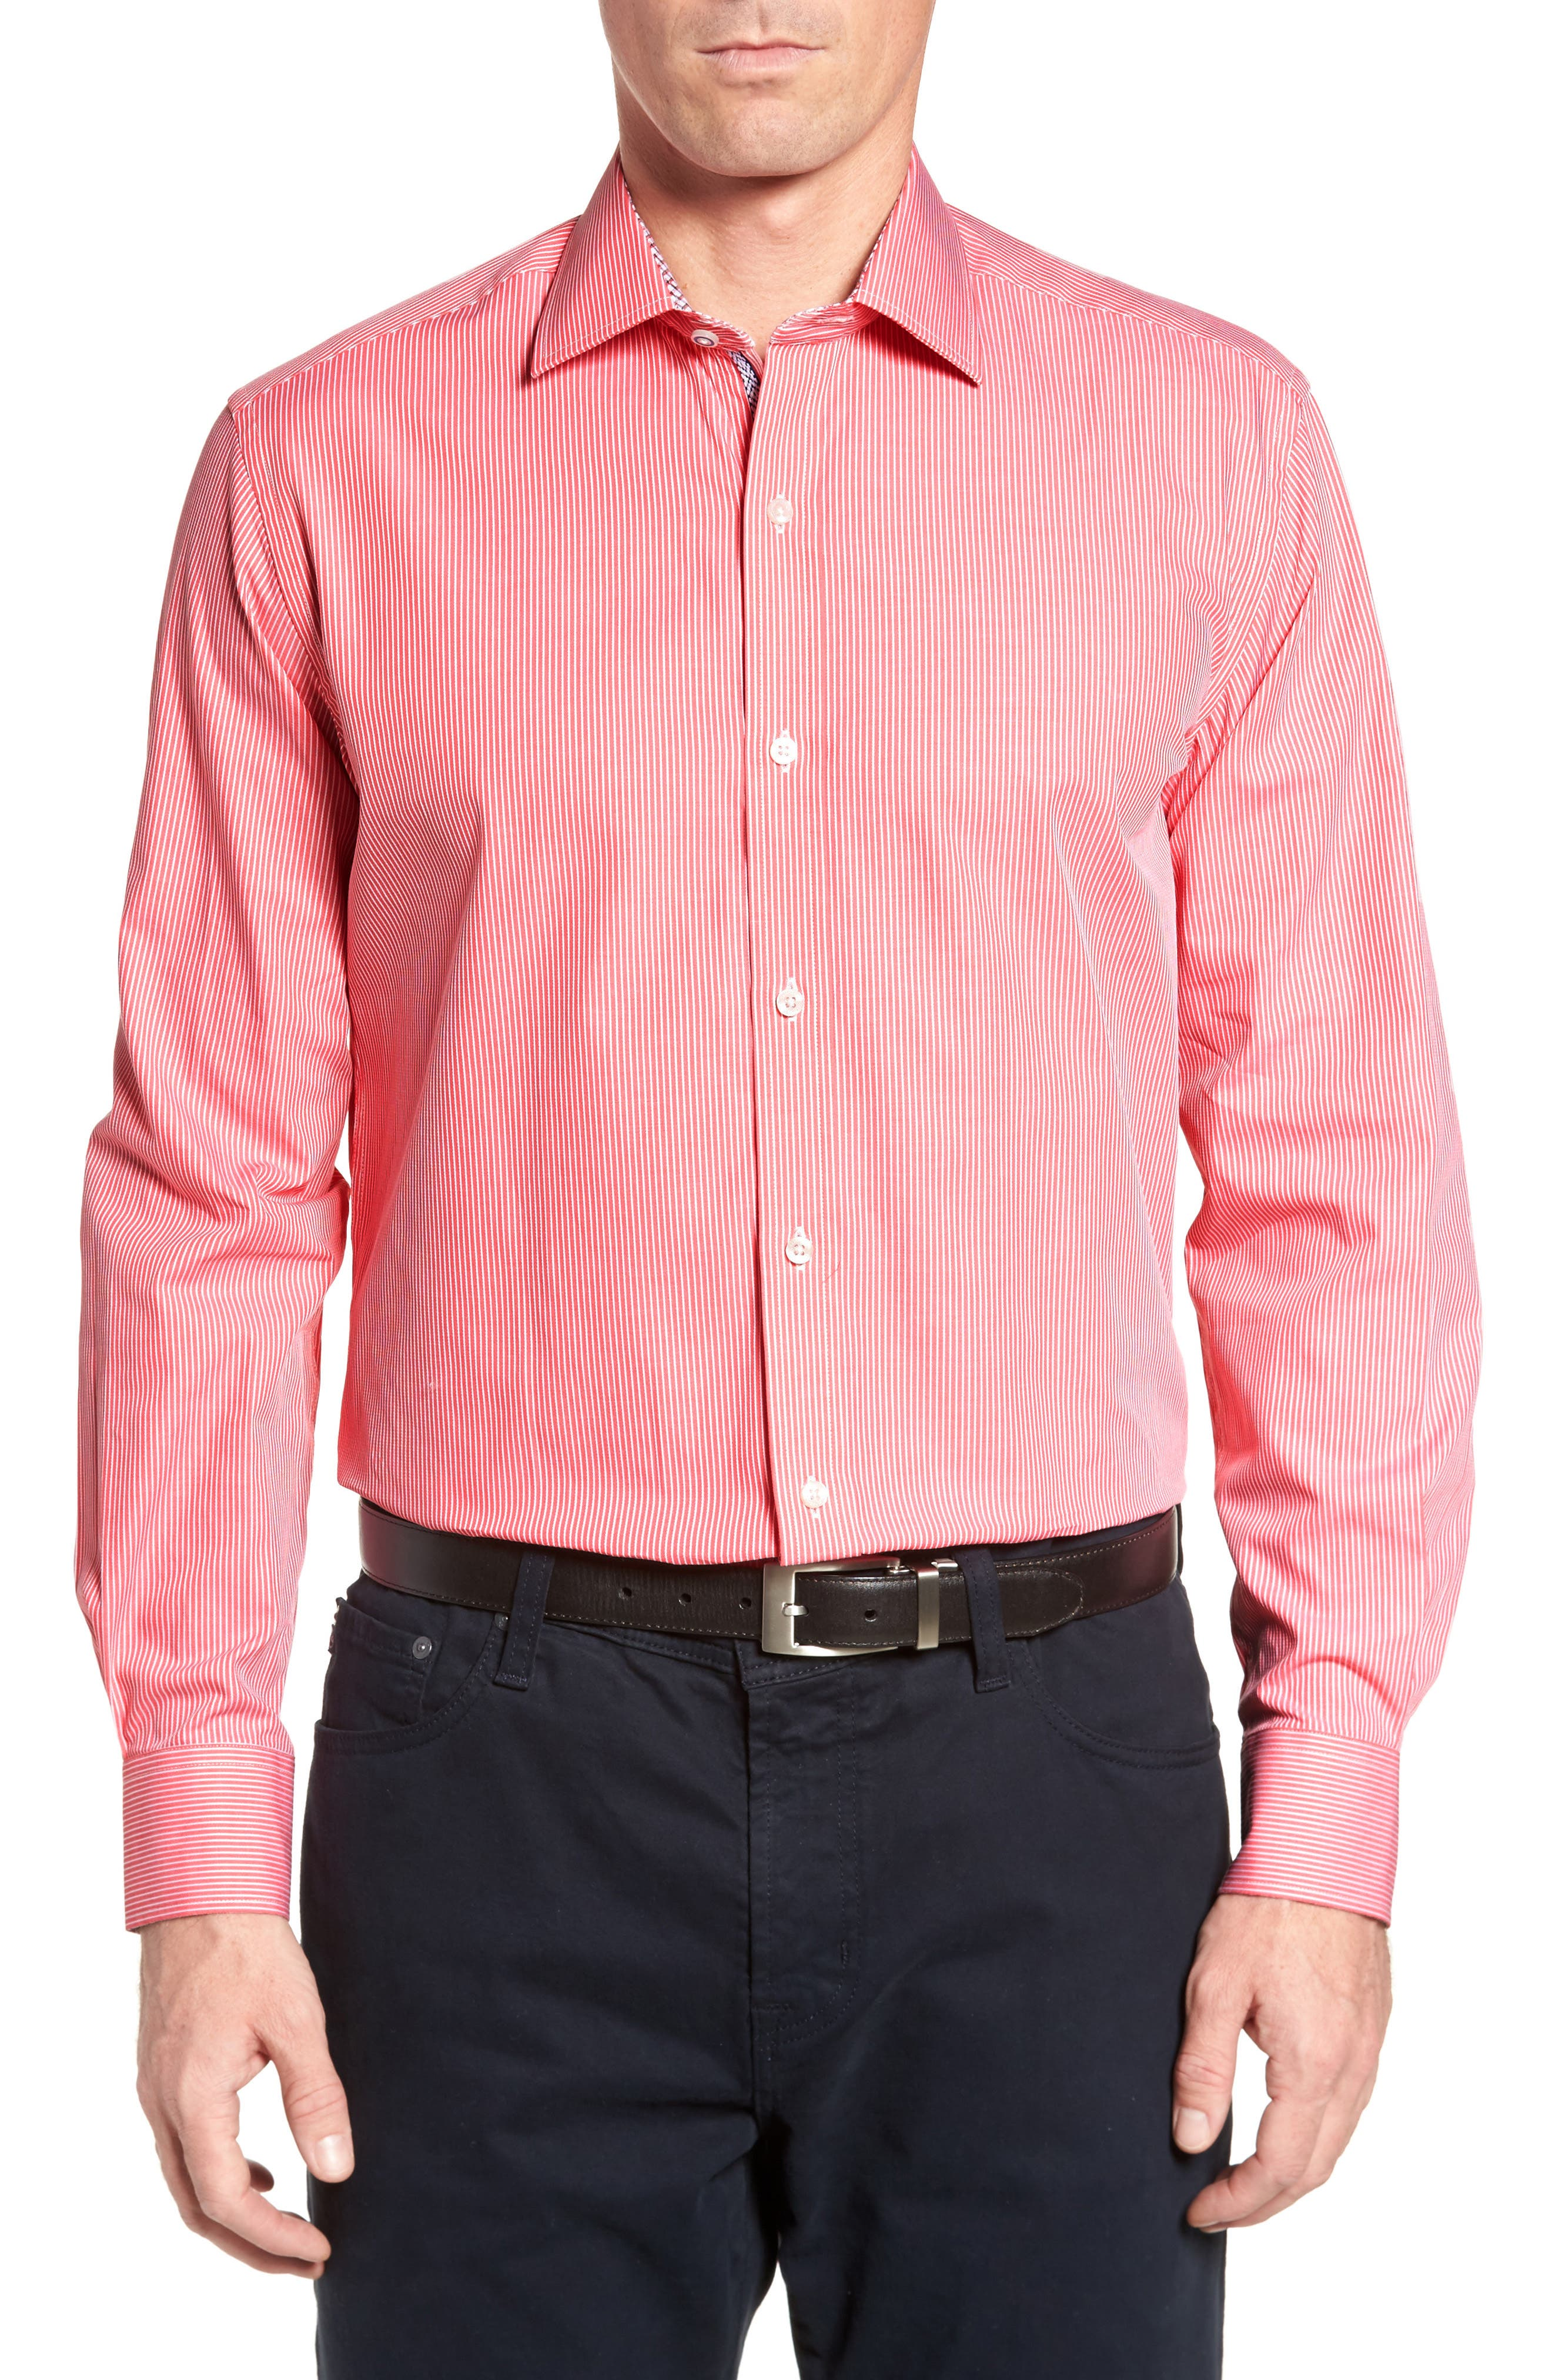 Oaksdale Stripe Sport Shirt,                             Main thumbnail 1, color,                             950